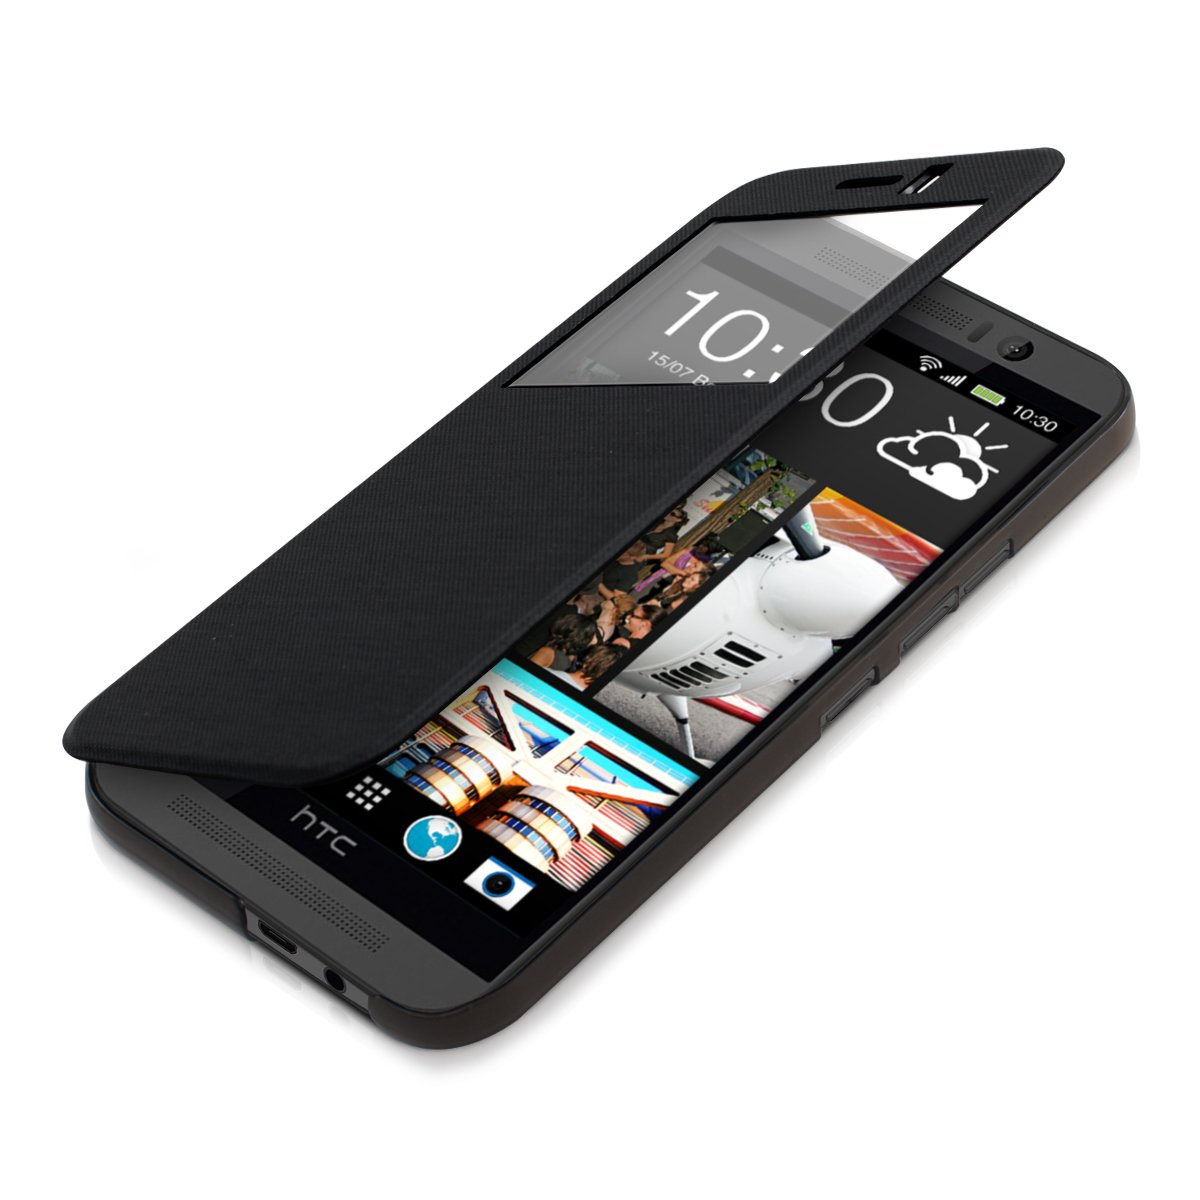 kwmobile Practical and chic FLIP COVER case with window for HTC One M9 in Black KW-Commerce 27670.01